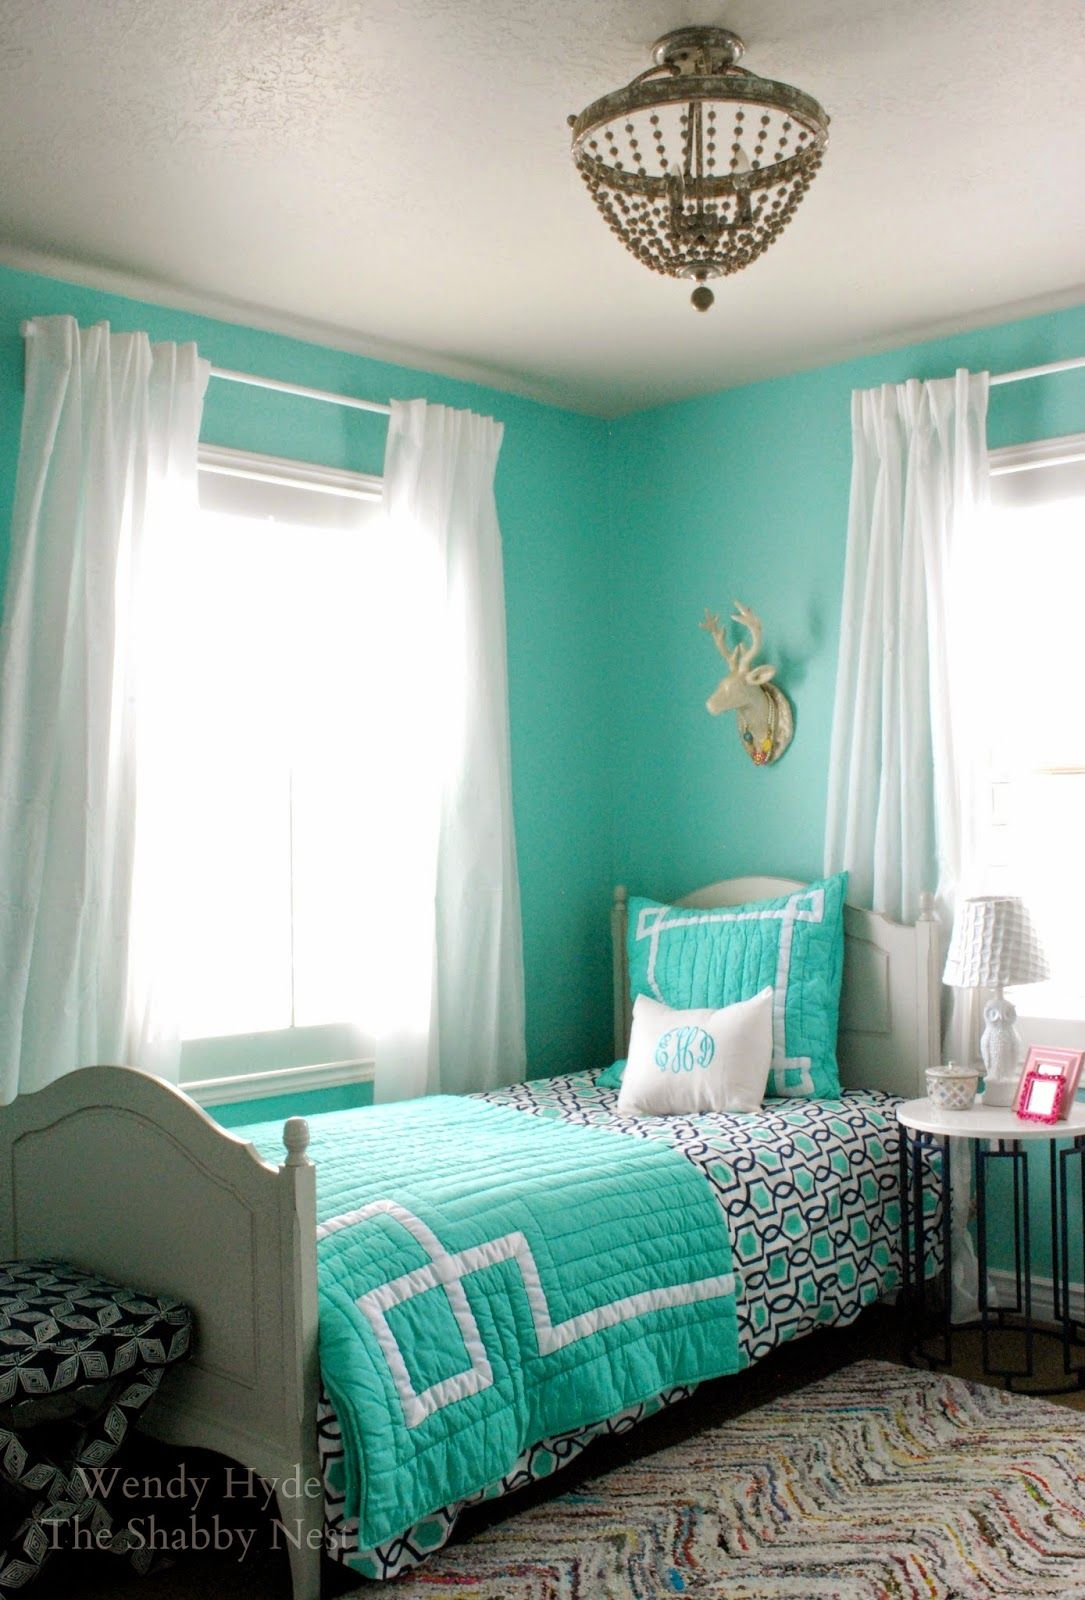 10 Stylish Green And Blue Room Ideas 15 best images about turquoise room decorations bedroom small